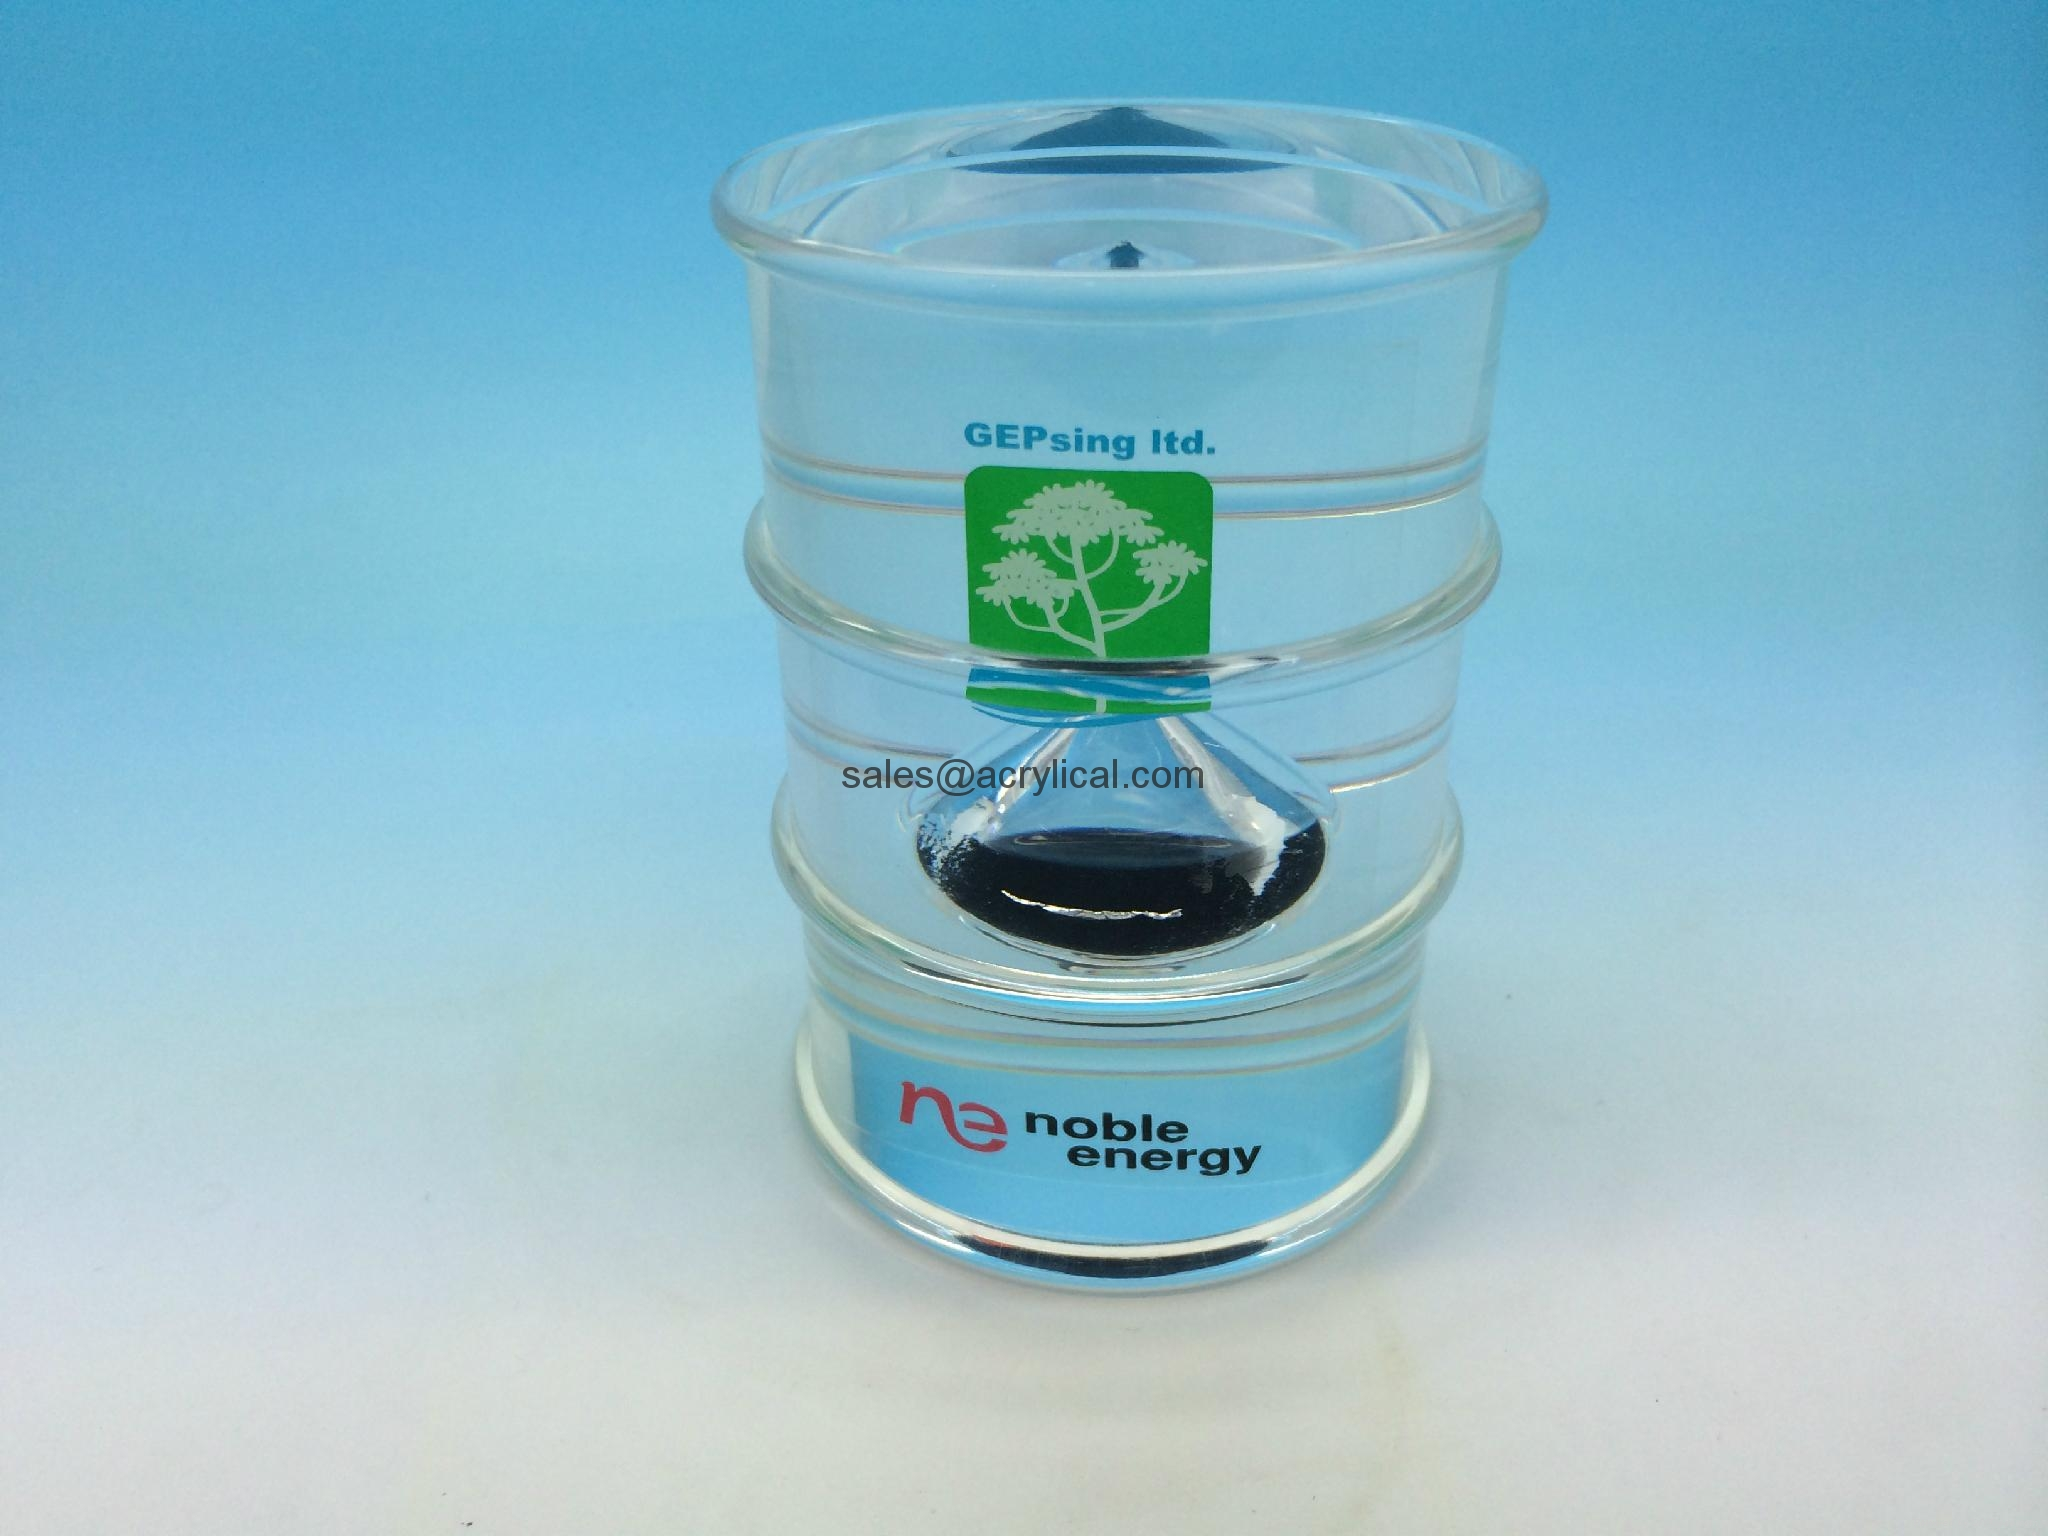 acrylic embedment, corporation souvenir gifts